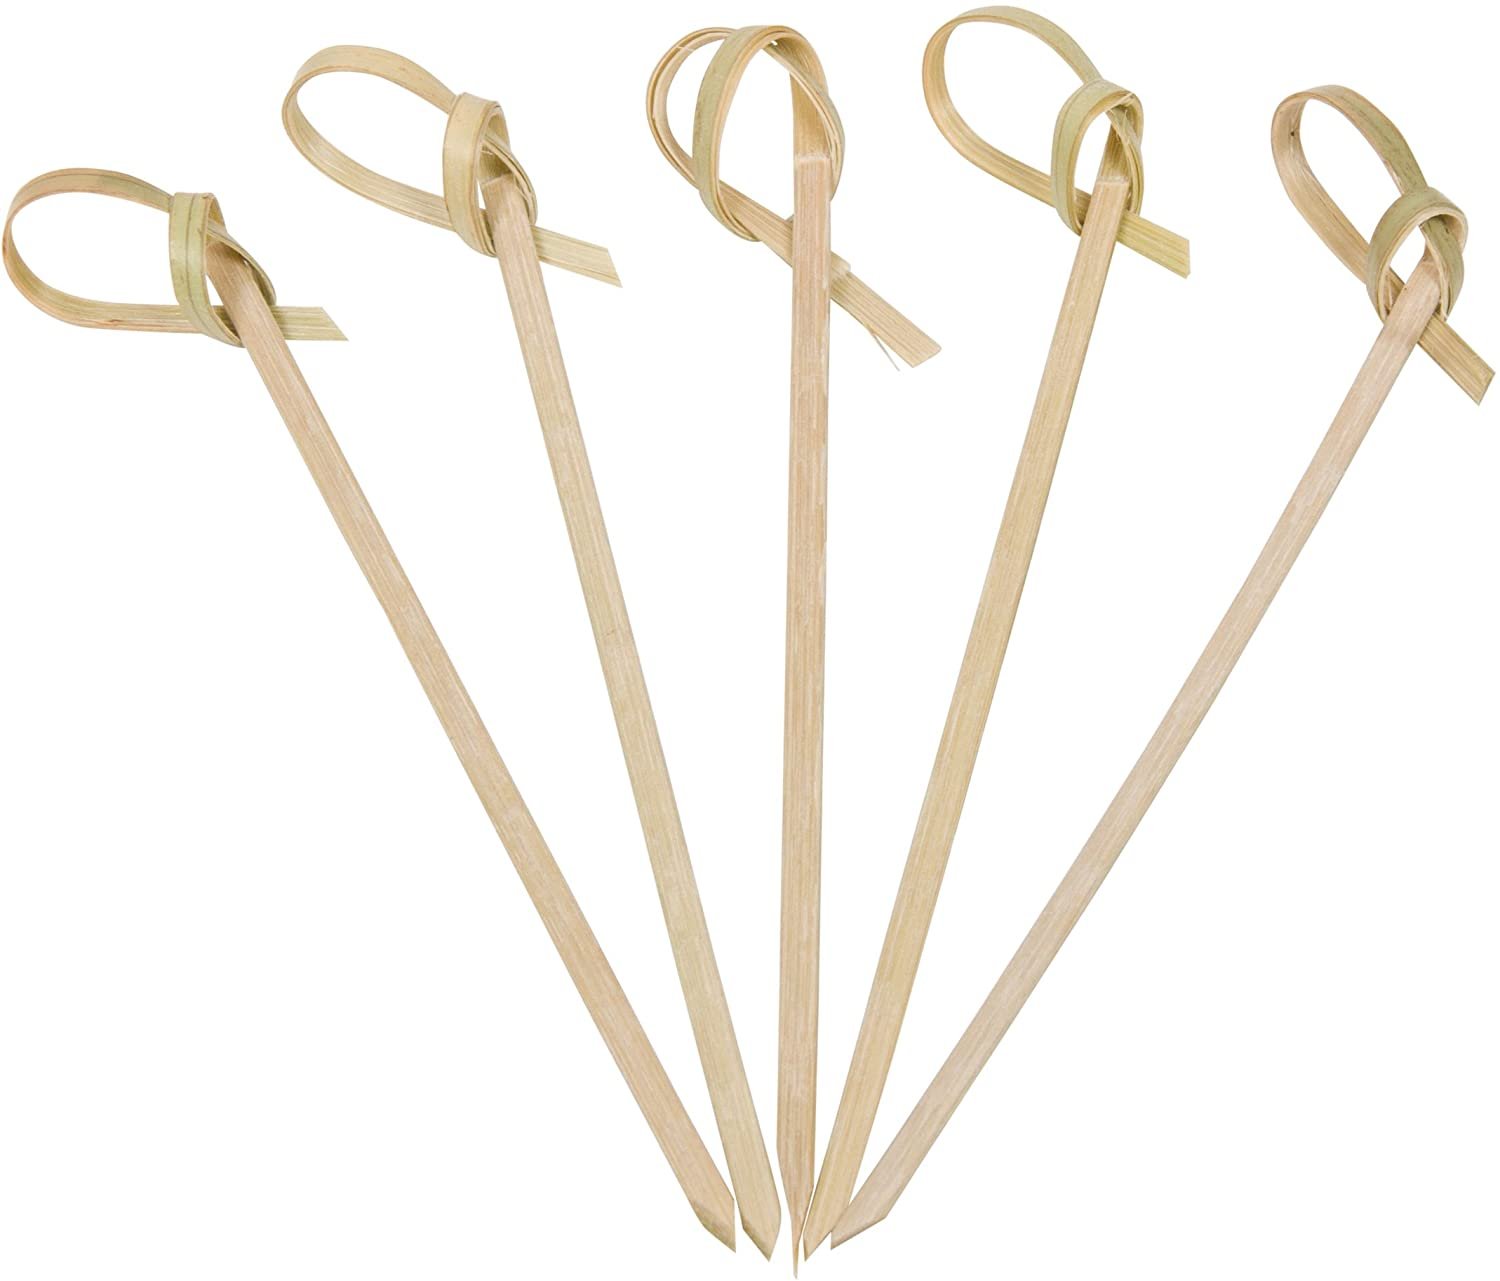 Bamboo Knot Picks by Aevia - Disposable Eco-Friendly Cocktail Skewers